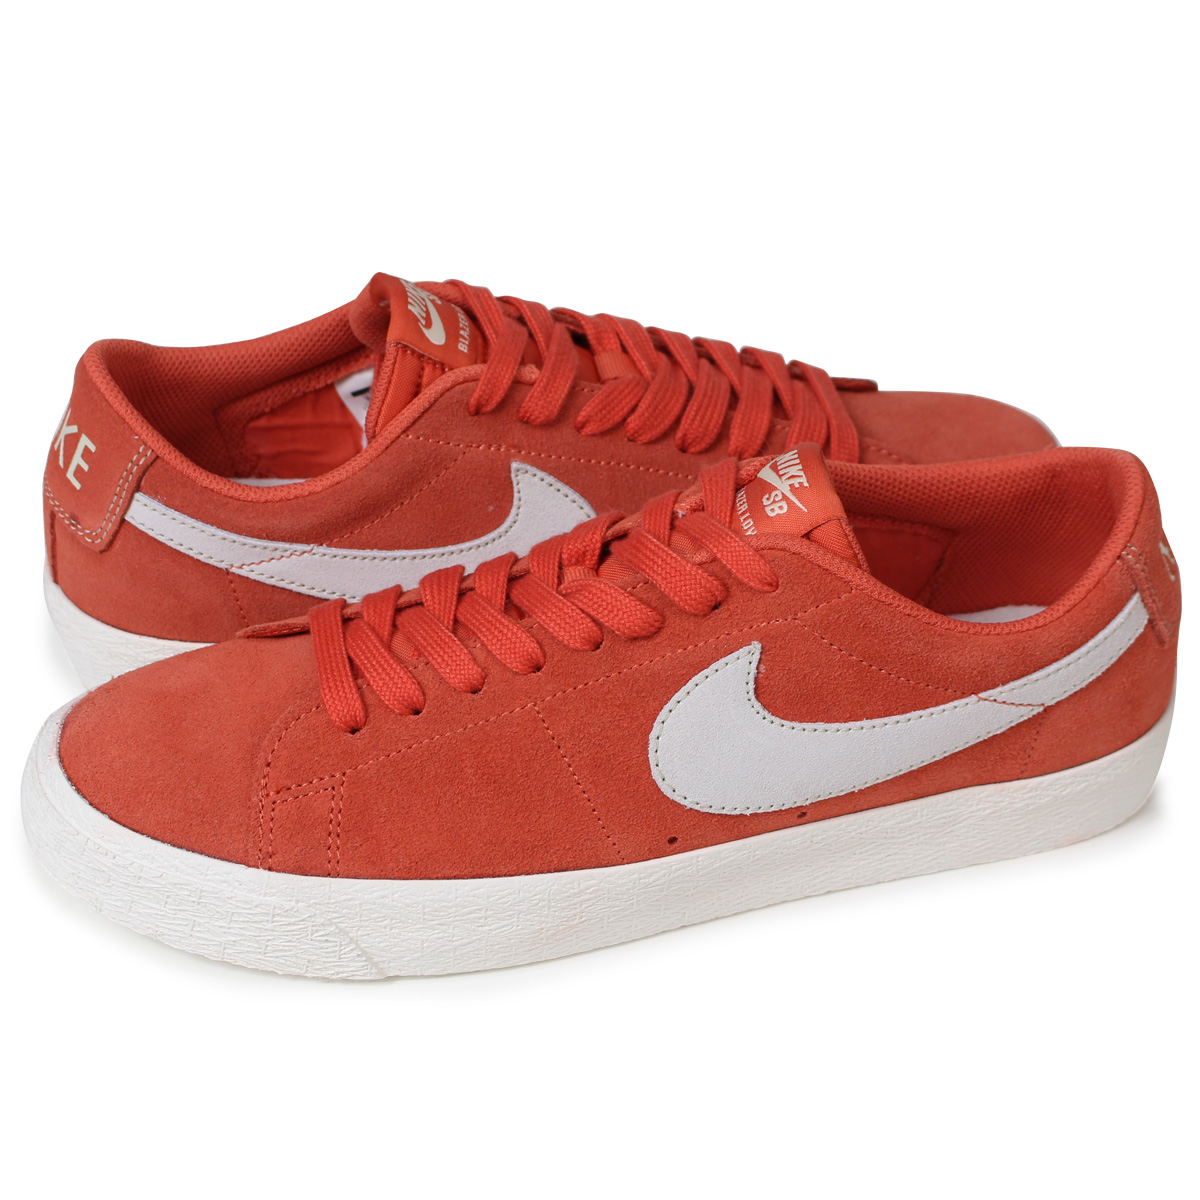 the latest 8b0ed a4378 NIKE BLAZER ZOOM LOW Nike SB blazer low sneakers men 864,347-800 orange  [load planned Shinnyu load in reservation product 5/12 containing]